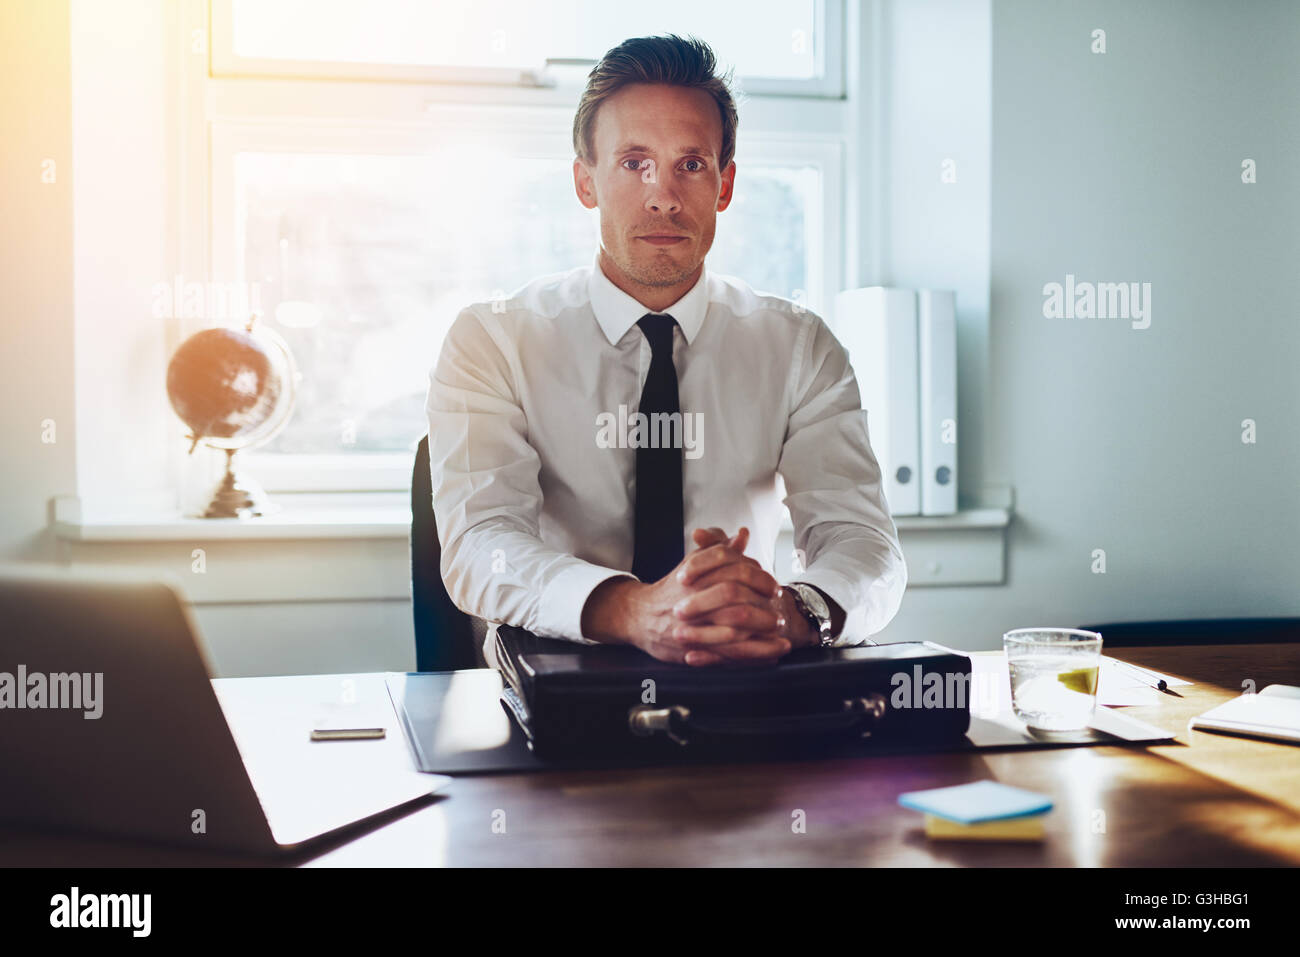 Executive business man at his desk looking with authority at the camera, hands folded on brief case at desk - Stock Image